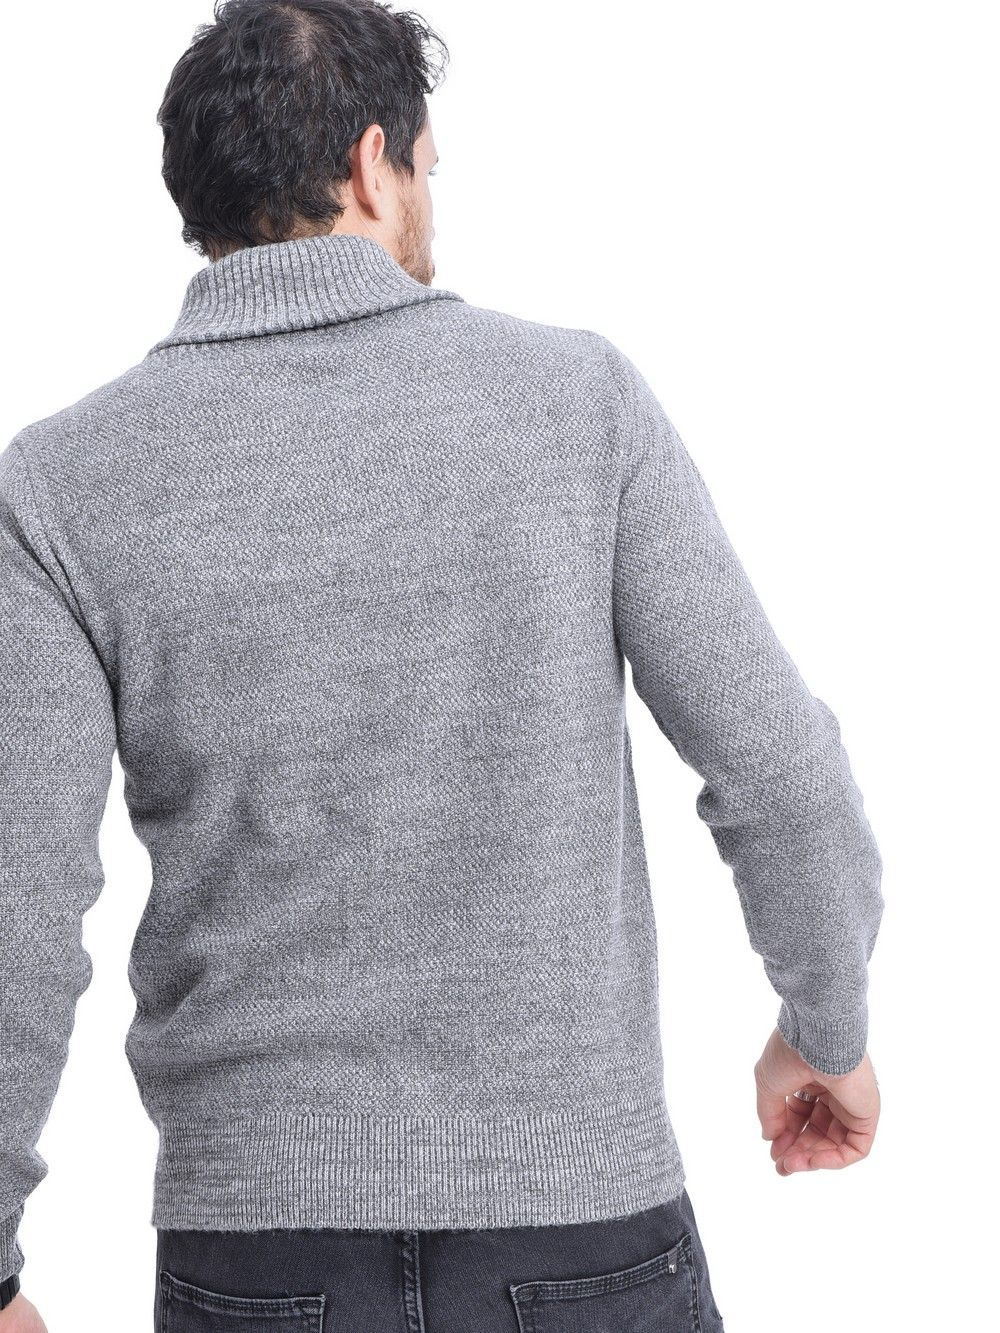 William De Faye Shawl Collar Jacquard Sweater with Butons in Grey